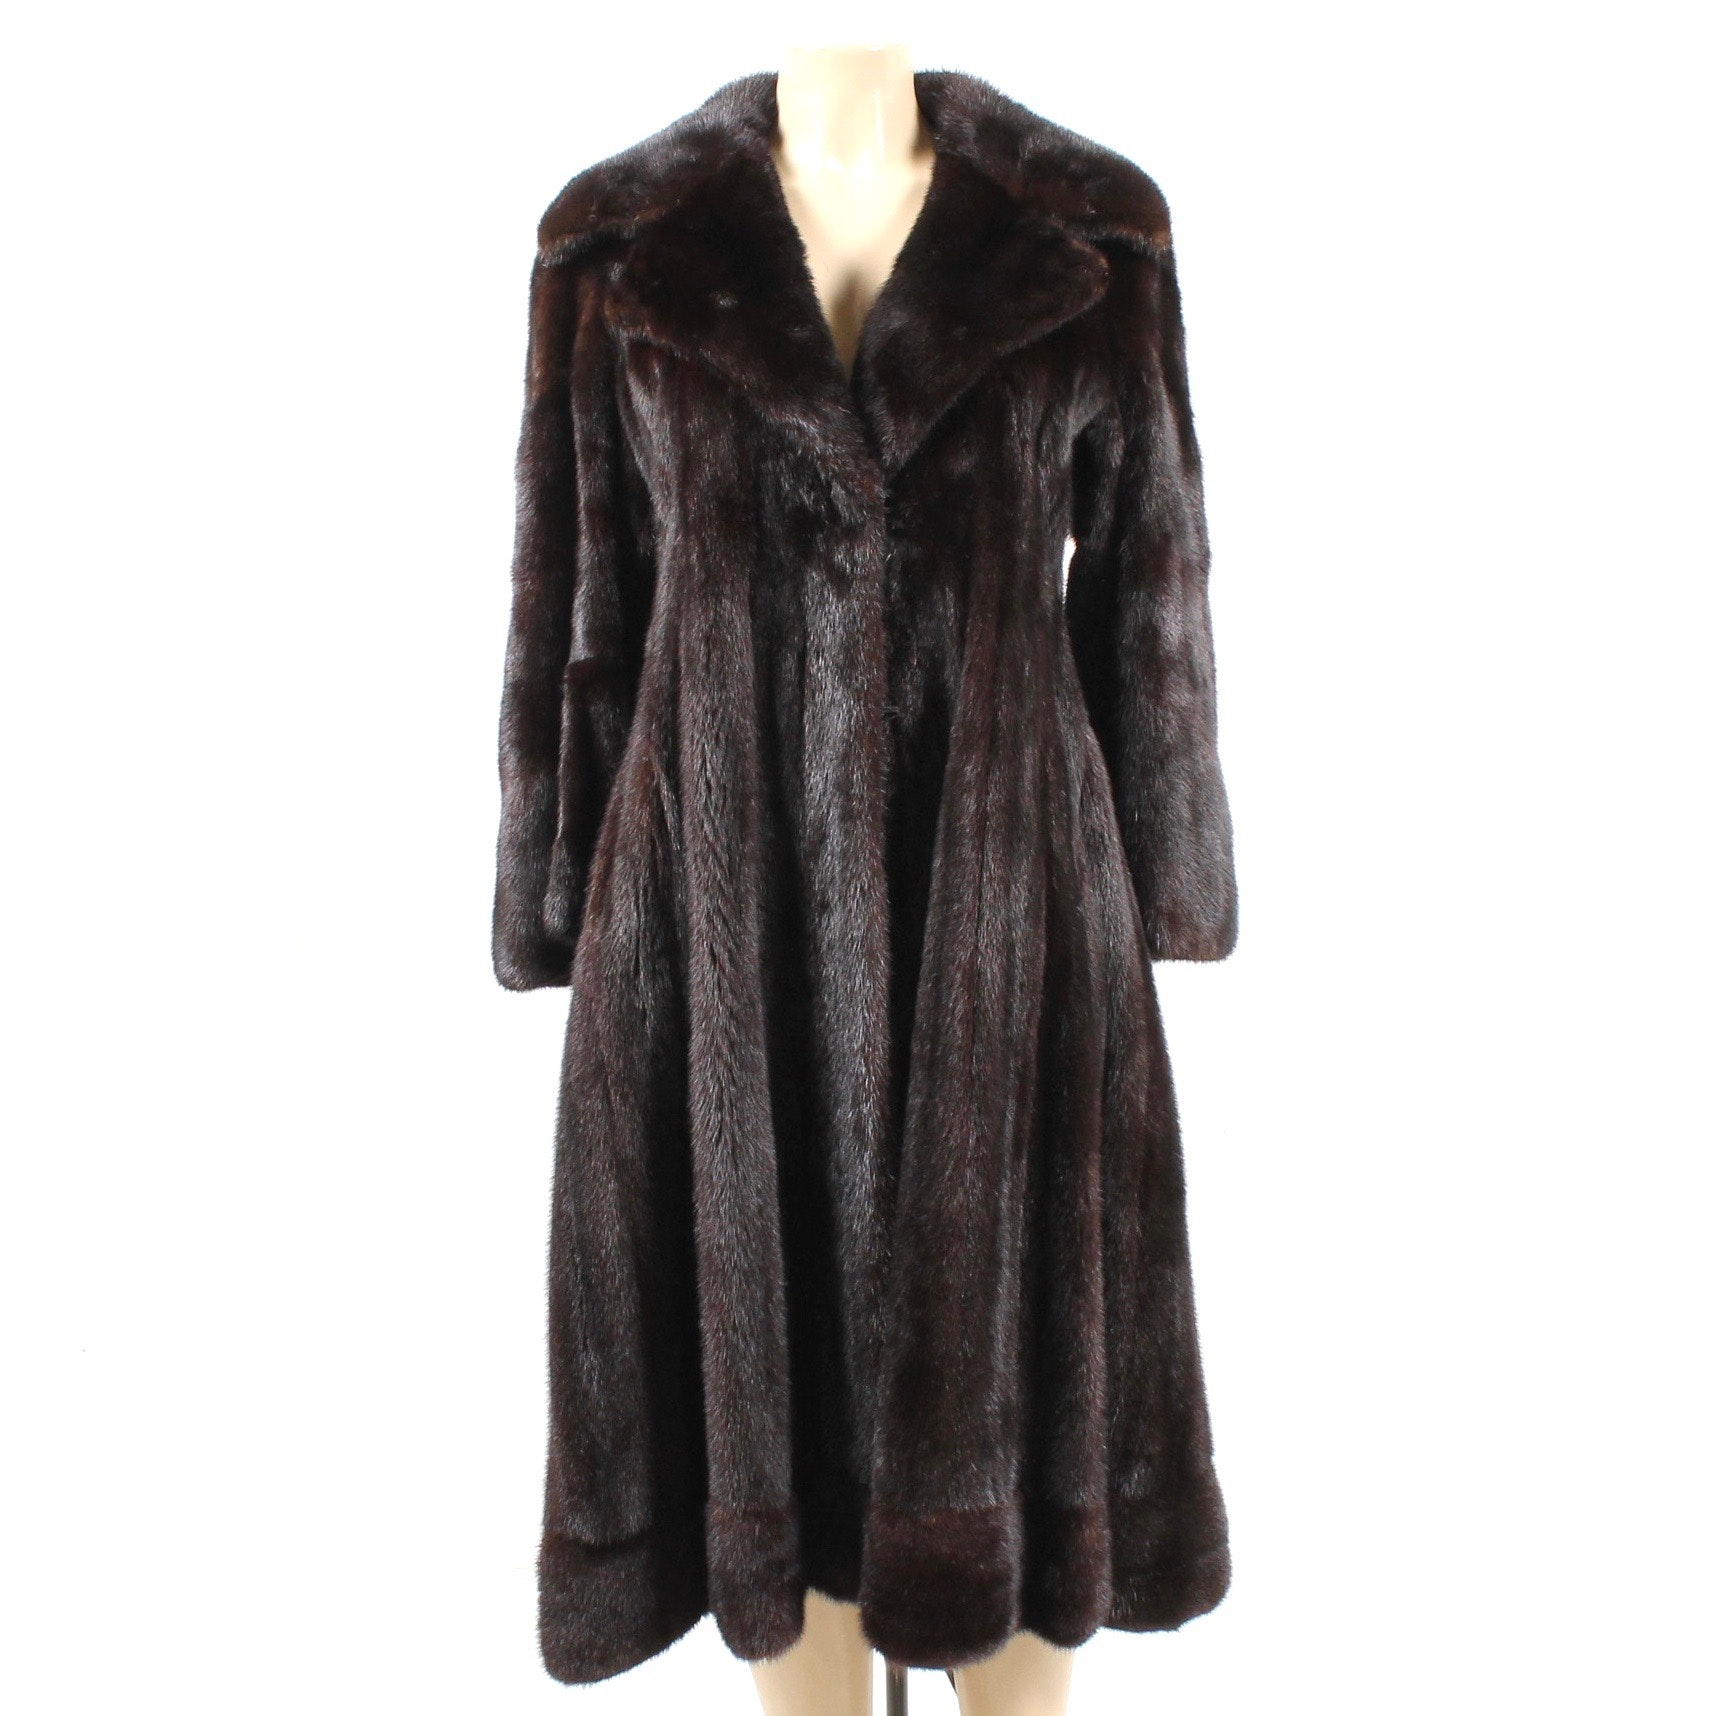 Vintage Ranch Mink Fur Coat from Manor-Feldman